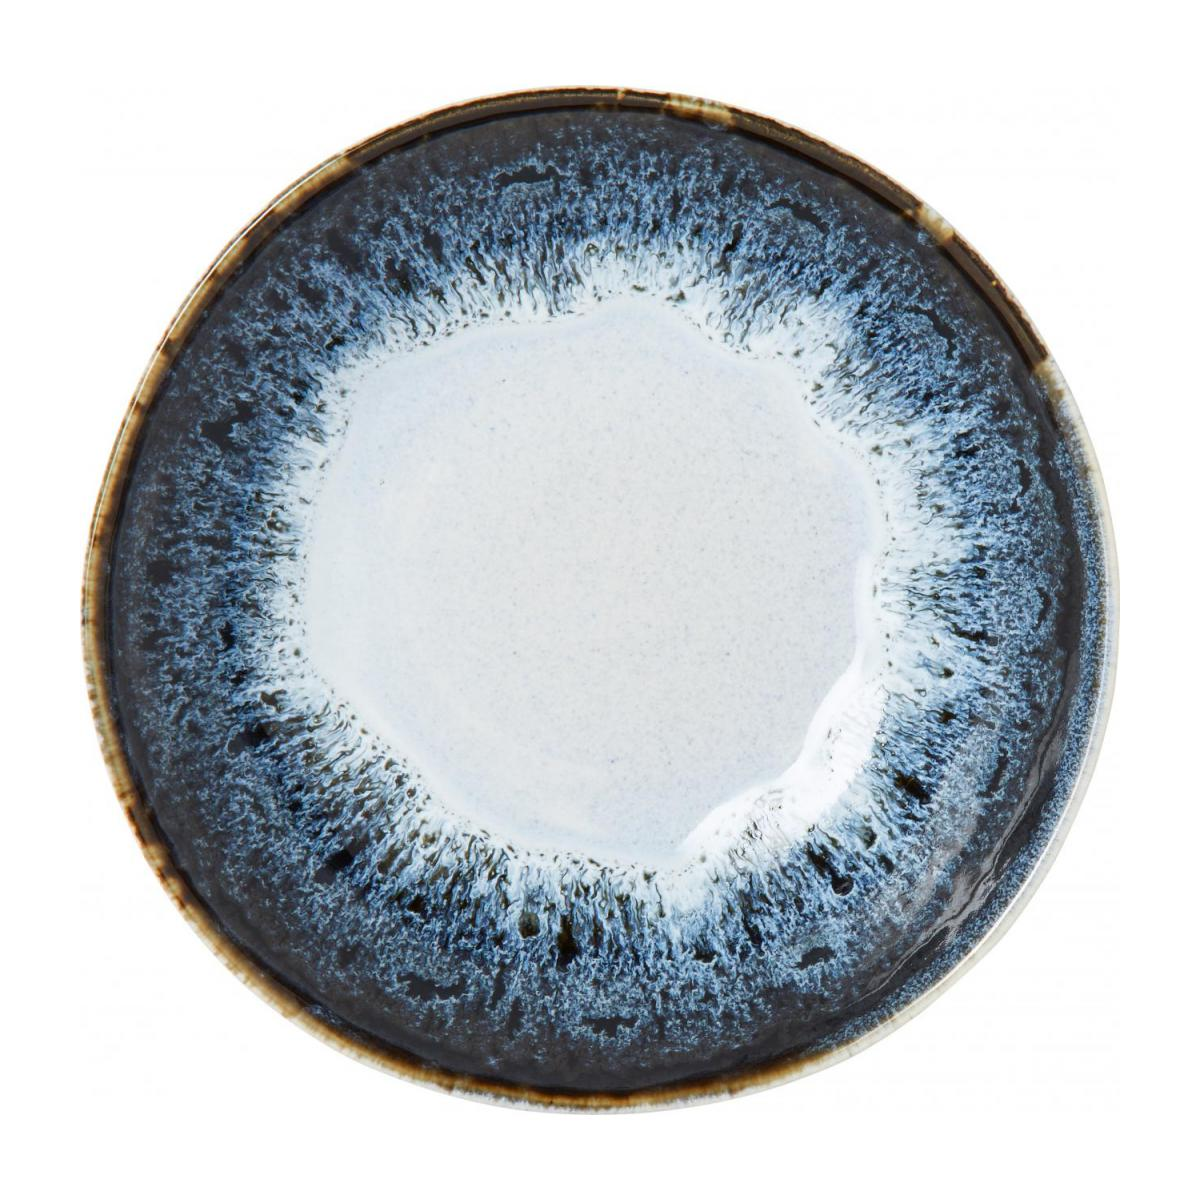 Soup plate made of sandstone 17cm, white and black n°2